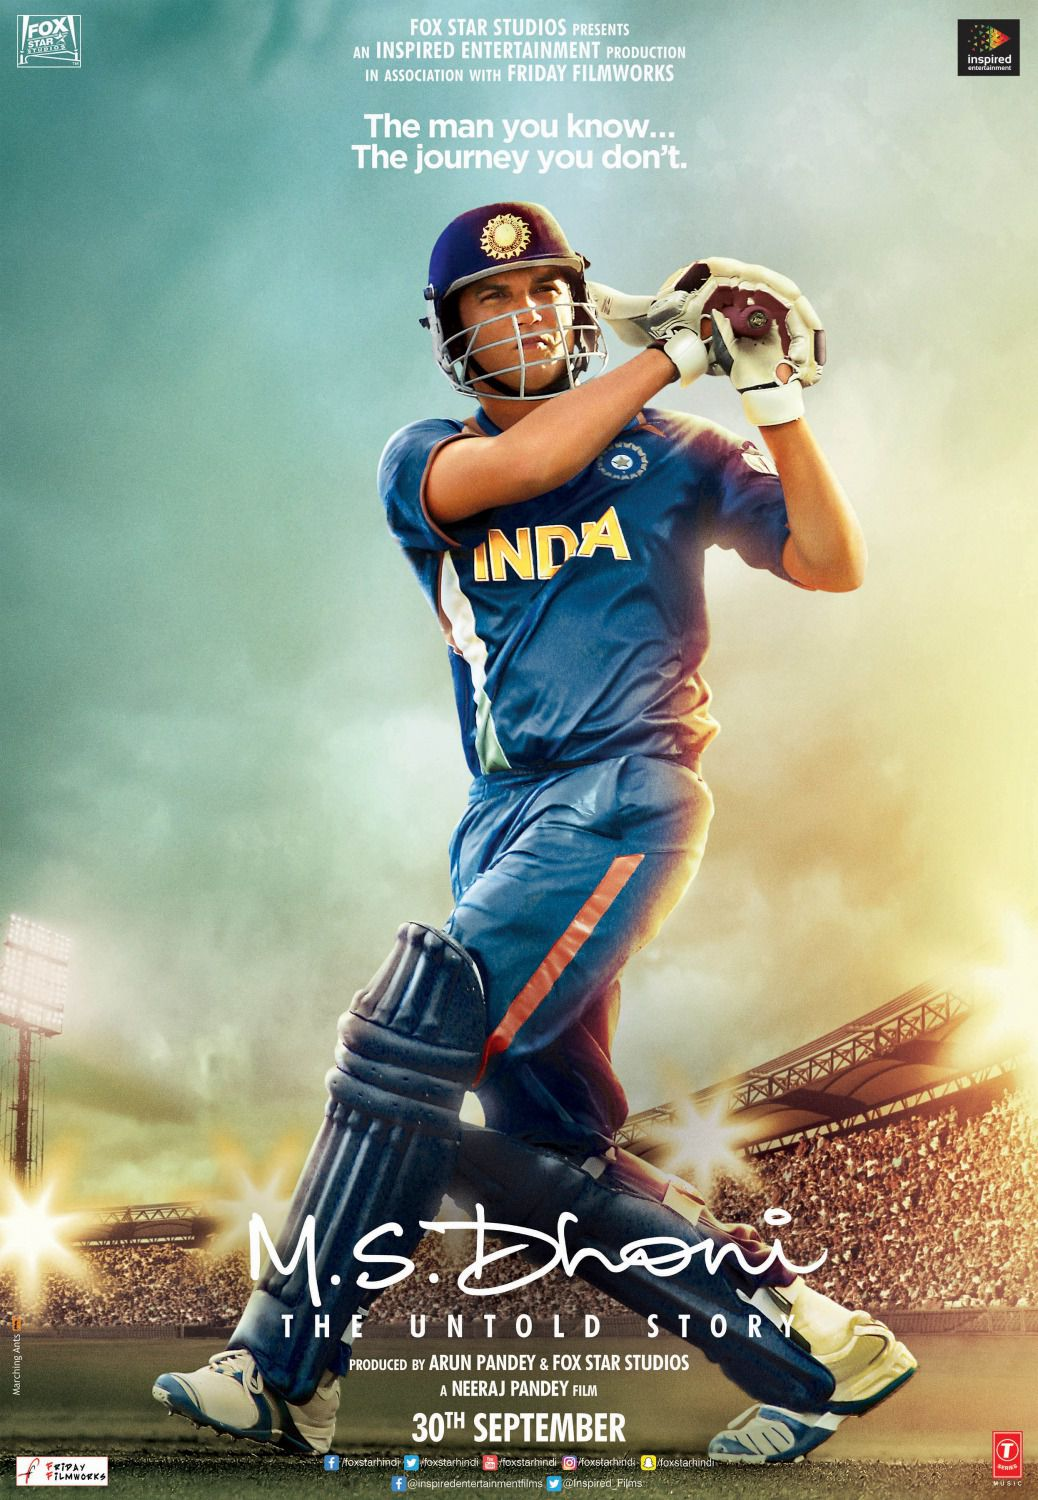 M.S. Dhoni the untold story - film poster